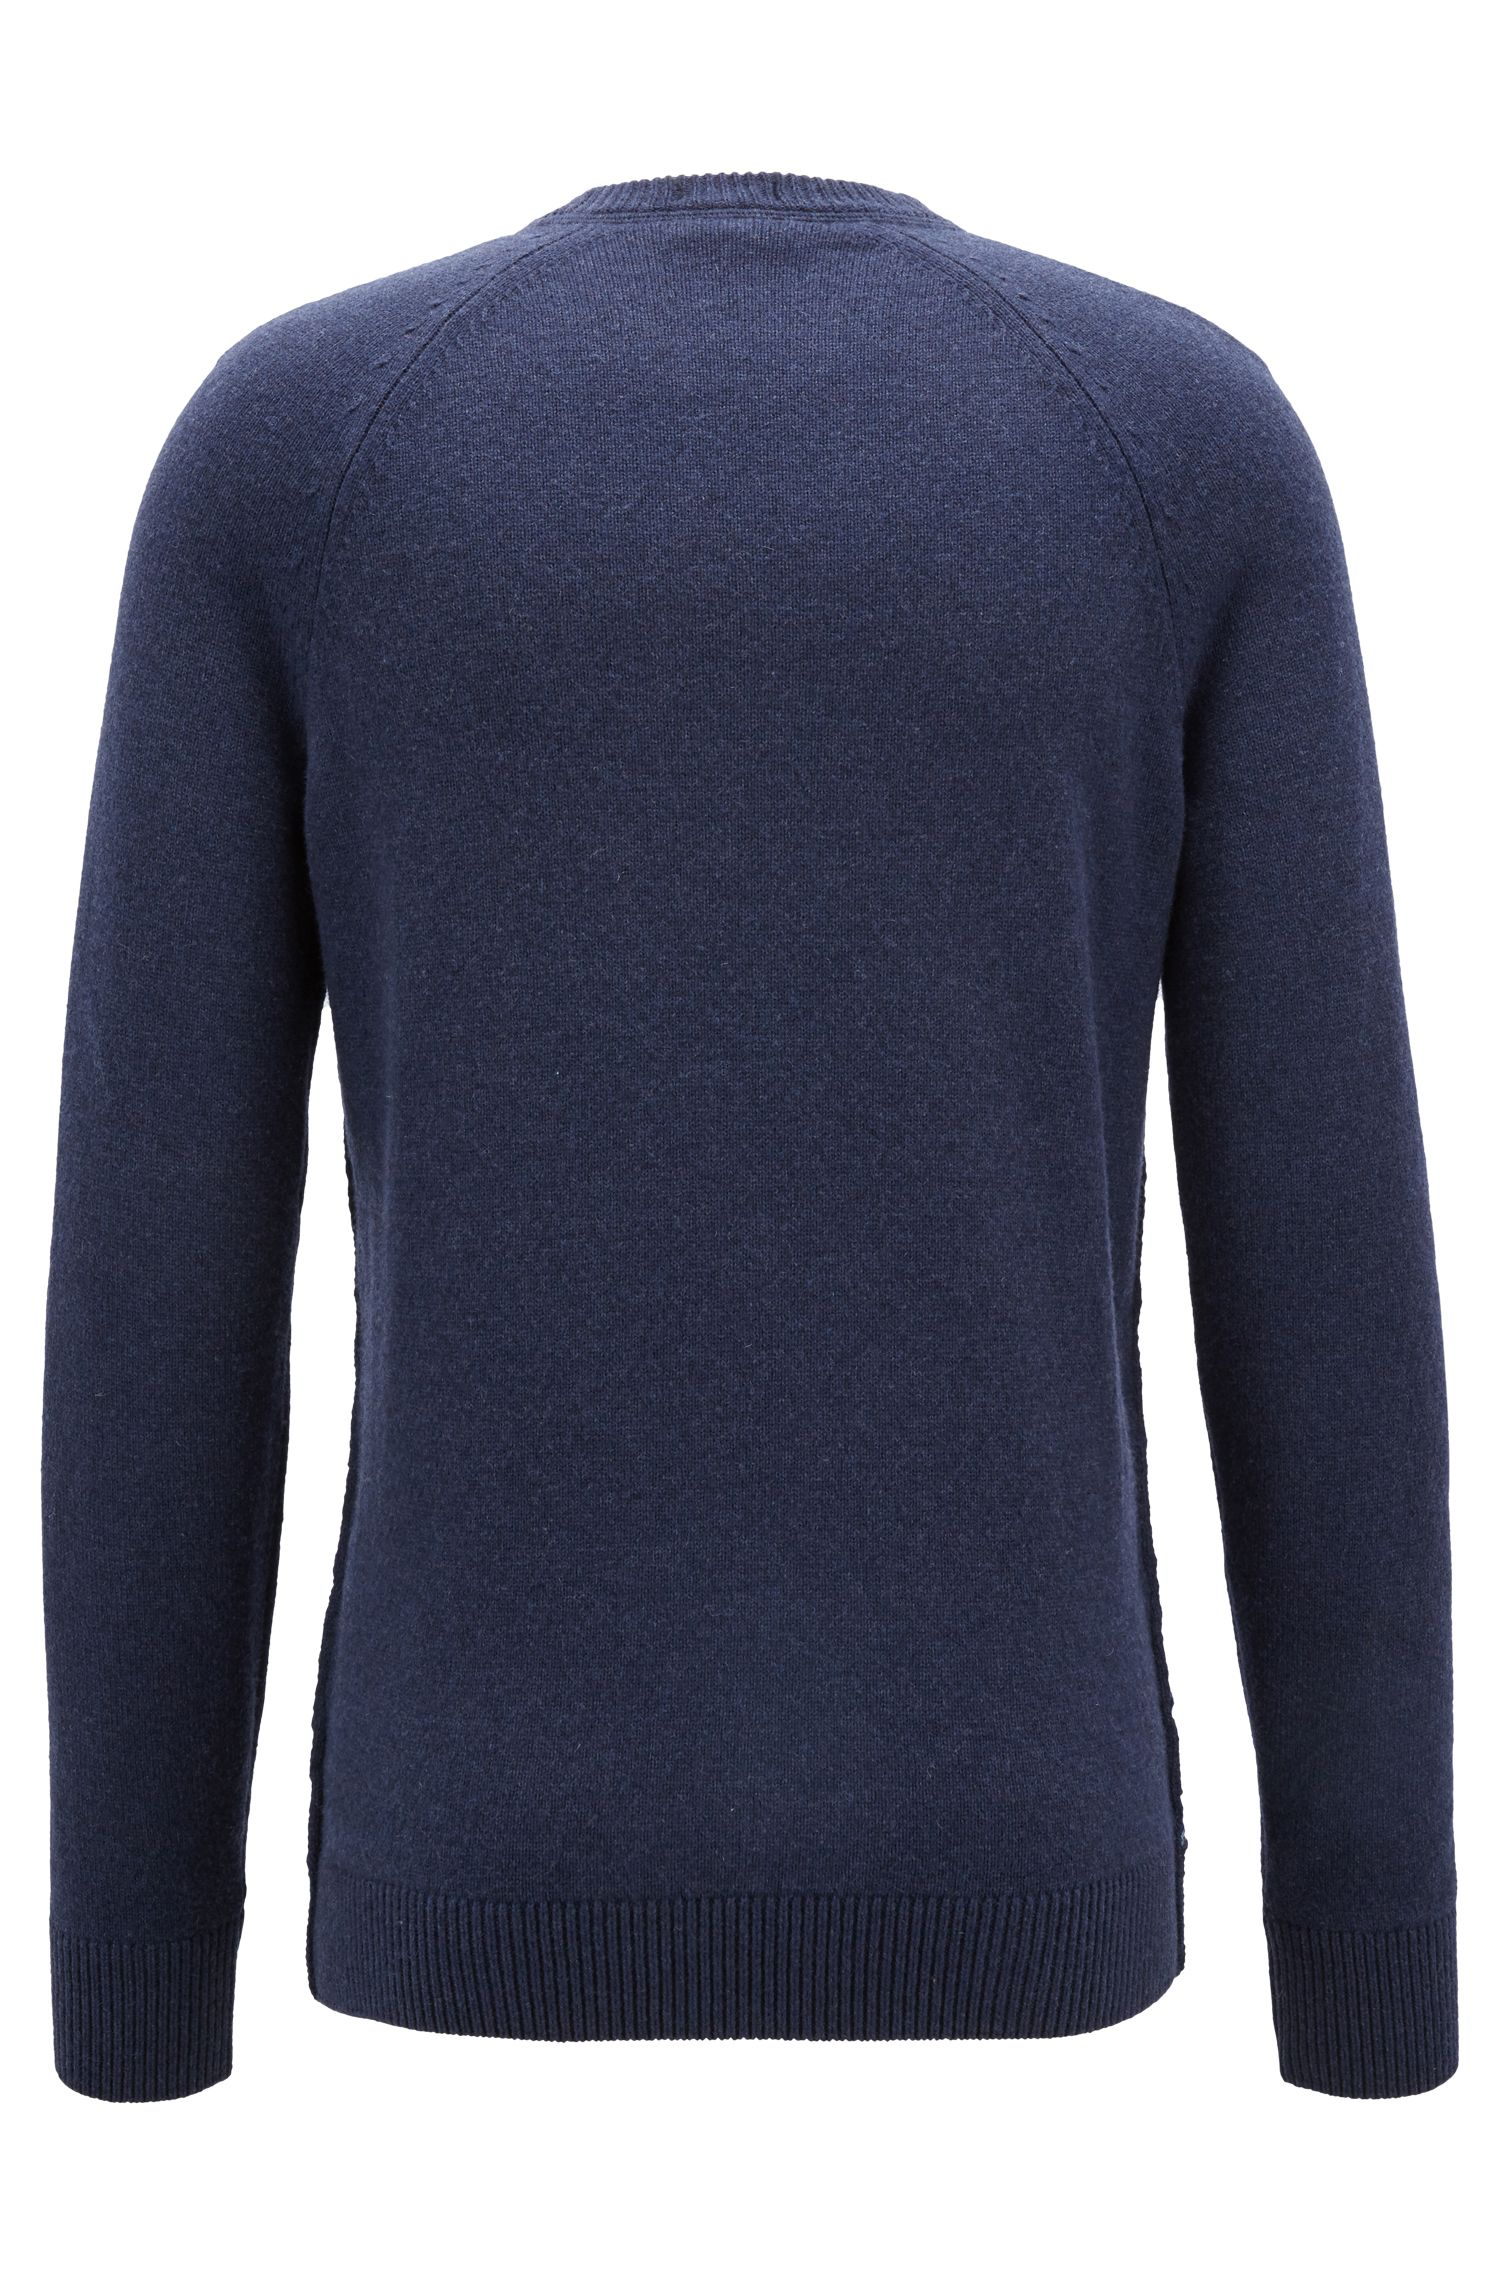 Crew-neck sweater in an Italian wool-cotton blend, Dark Blue